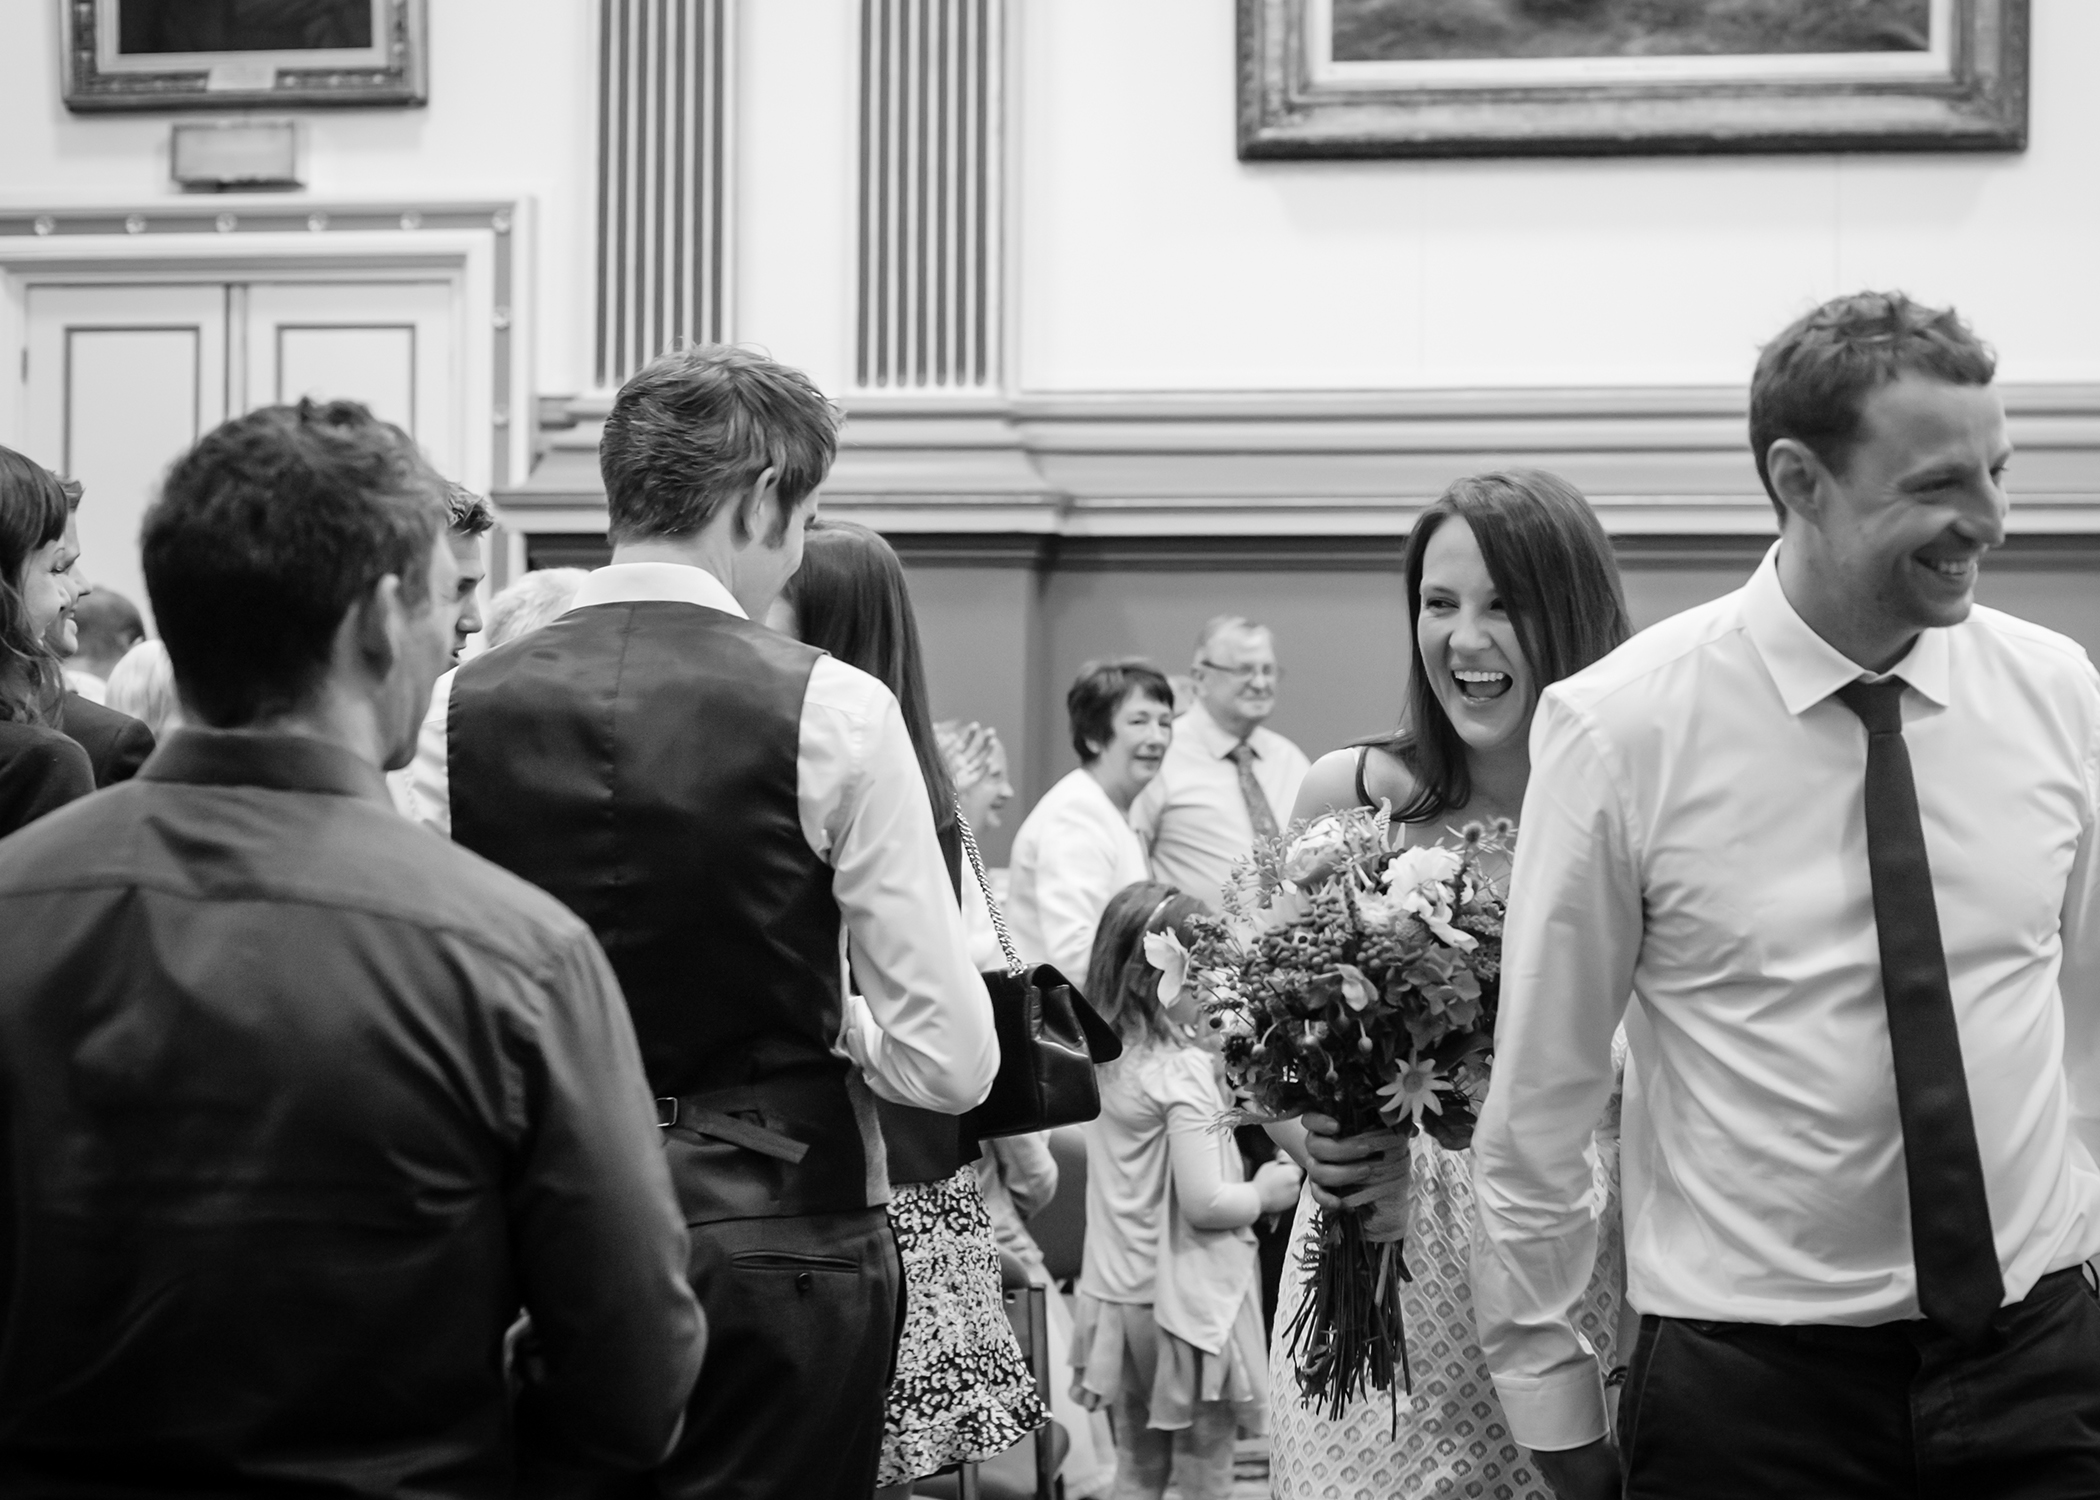 Portrait of wedding ceremony by wedding photographers at Ripe Photography in Leeds, England.